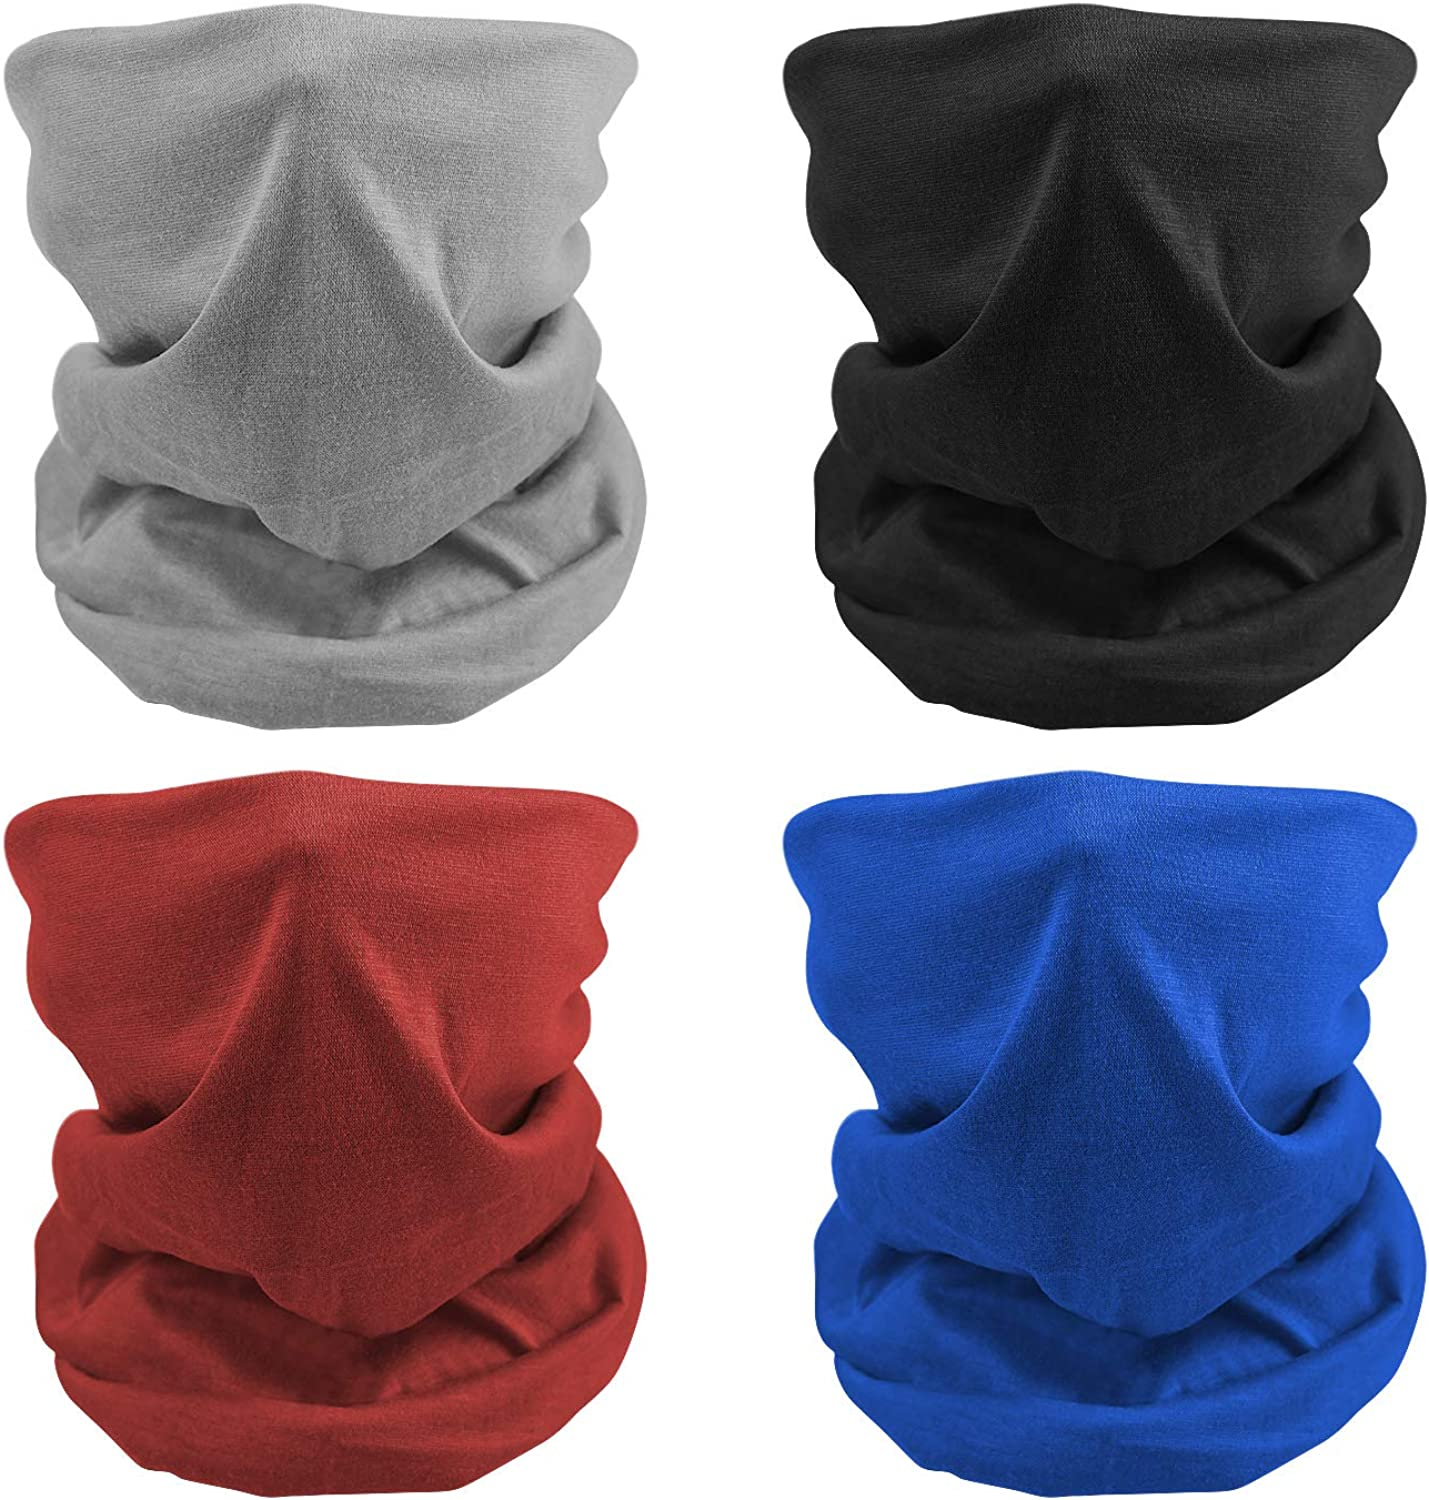 MENOLY 4Pcs Cooling Neck Gaiter Summer Face Cover Neck Scarf Bandanas Neck Wraps Balaclava Head Wrap for Men and Women Sports Yoga Fishing Cycling Running Hiking Camping